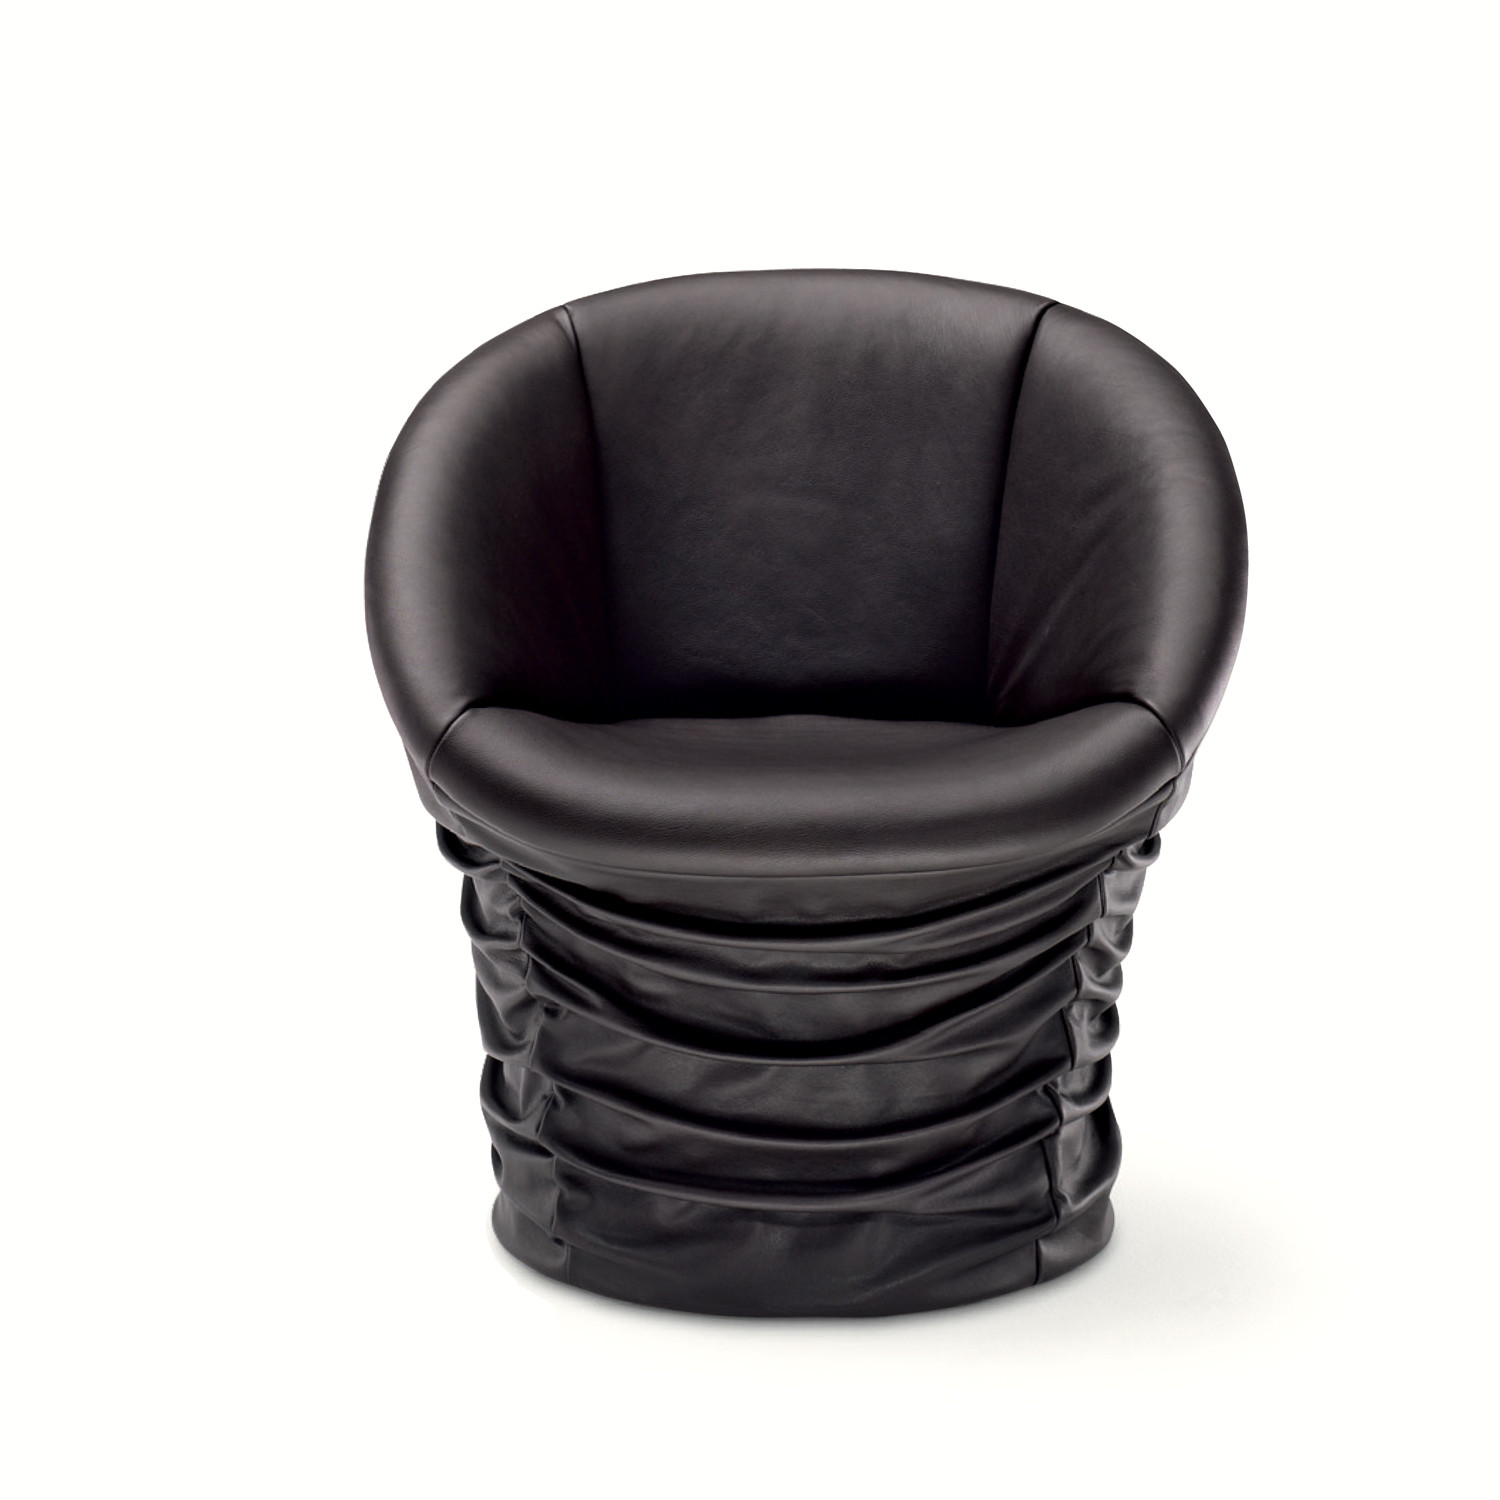 Bellows Leisure Chair